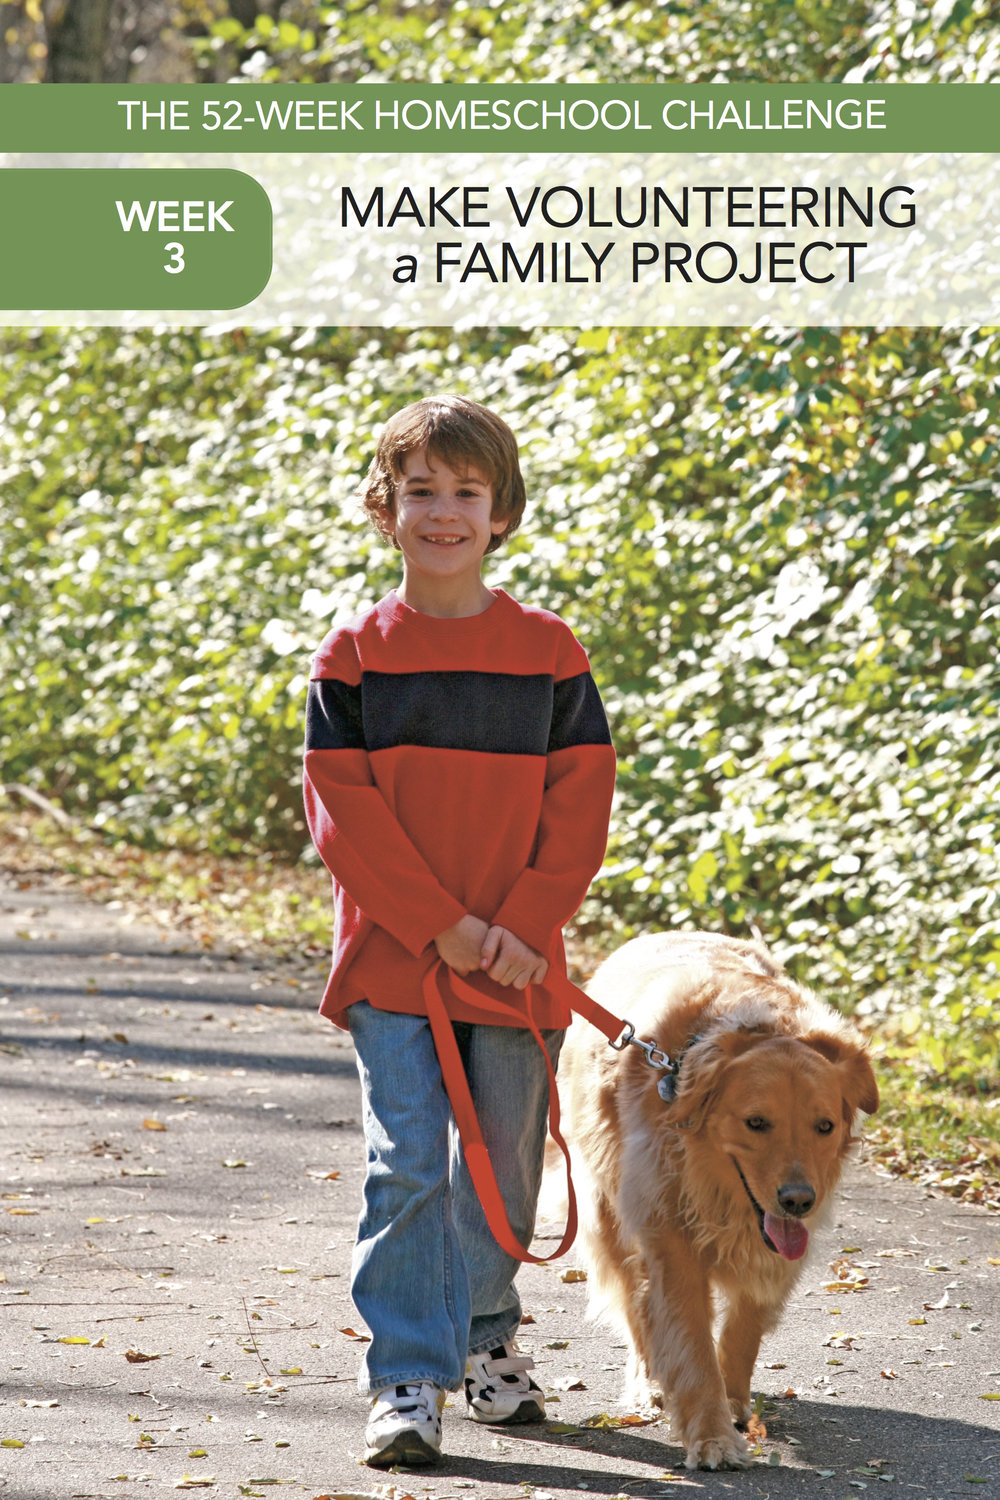 The 52-Week Homeschool Challenge: Start a Family Volunteer Project